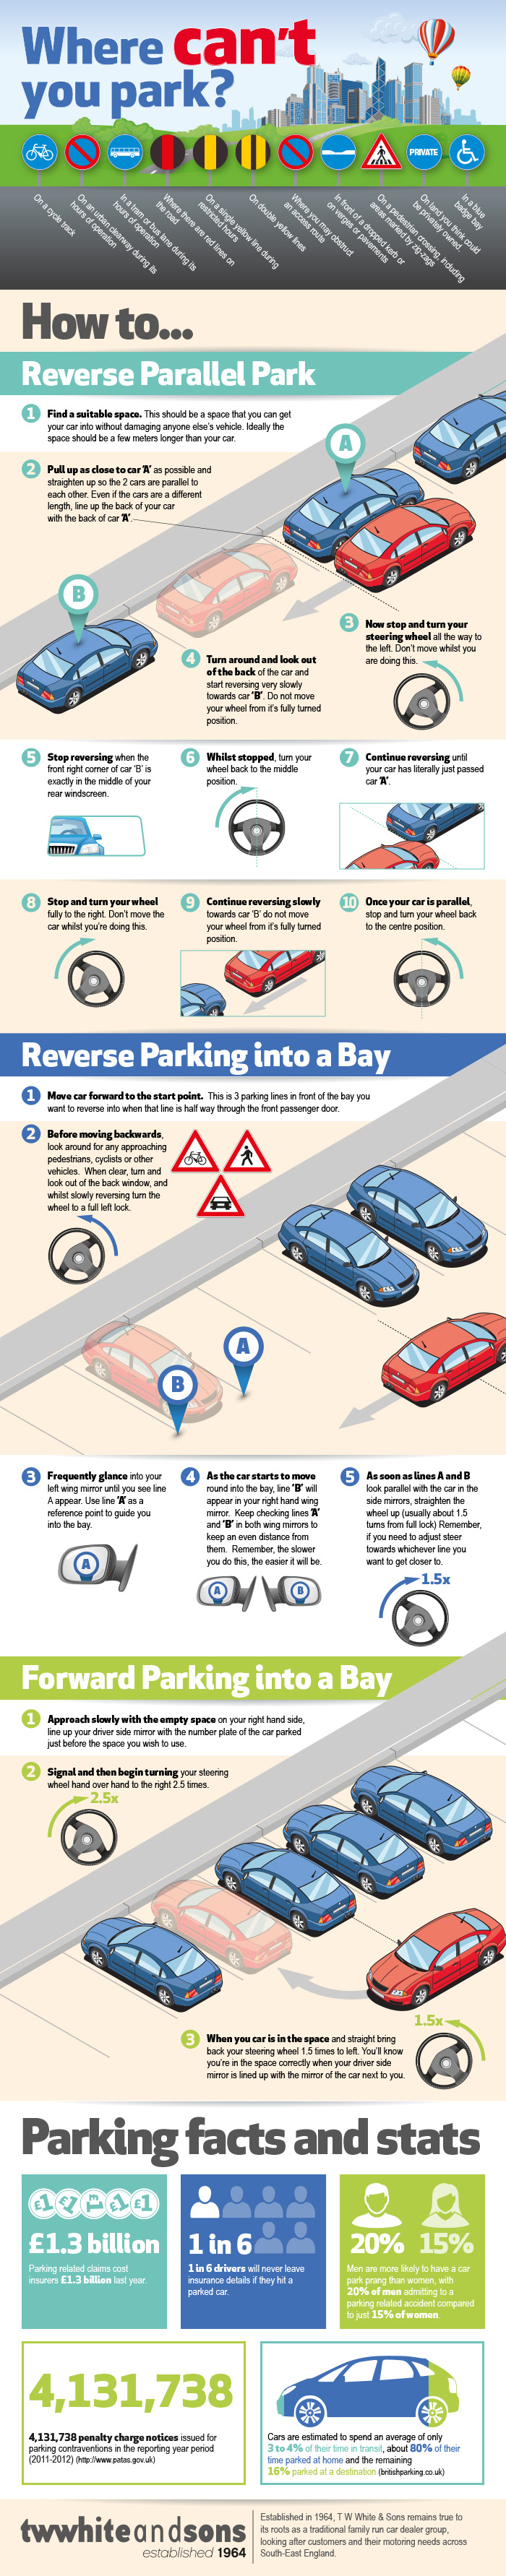 Car parking guide Infographic